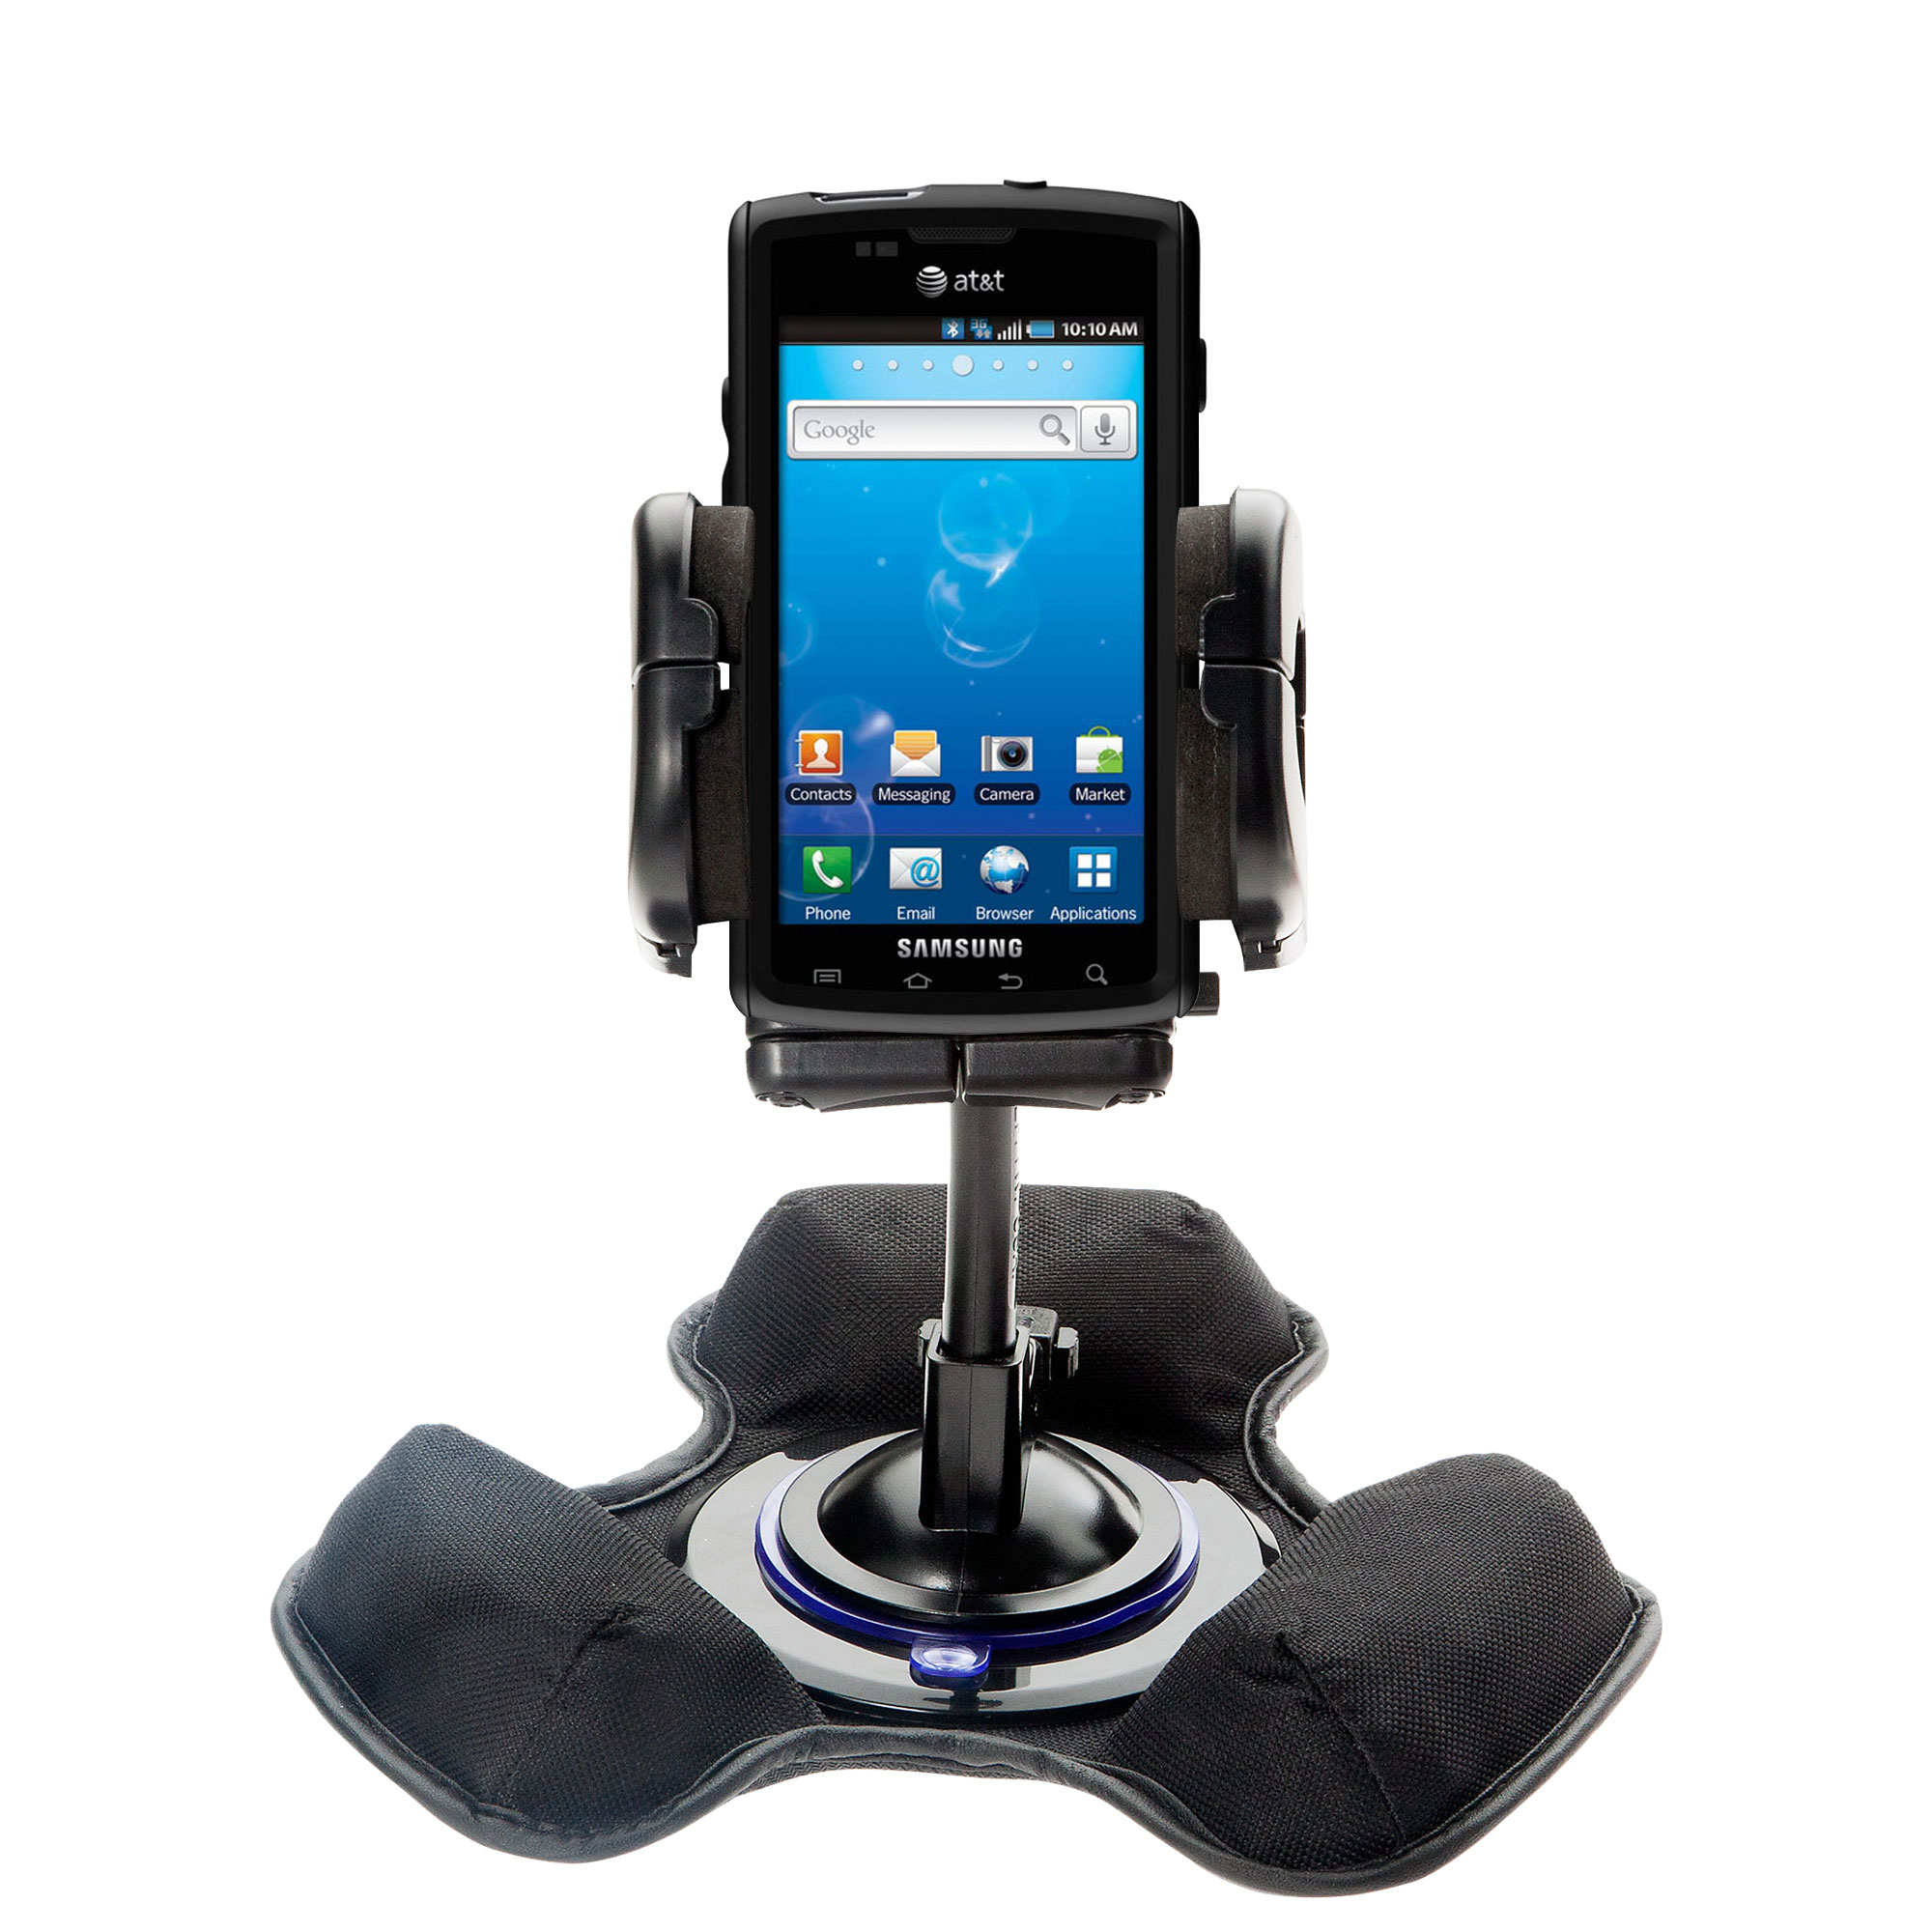 Dash and Windshield Holder compatible with the Samsung Captivate